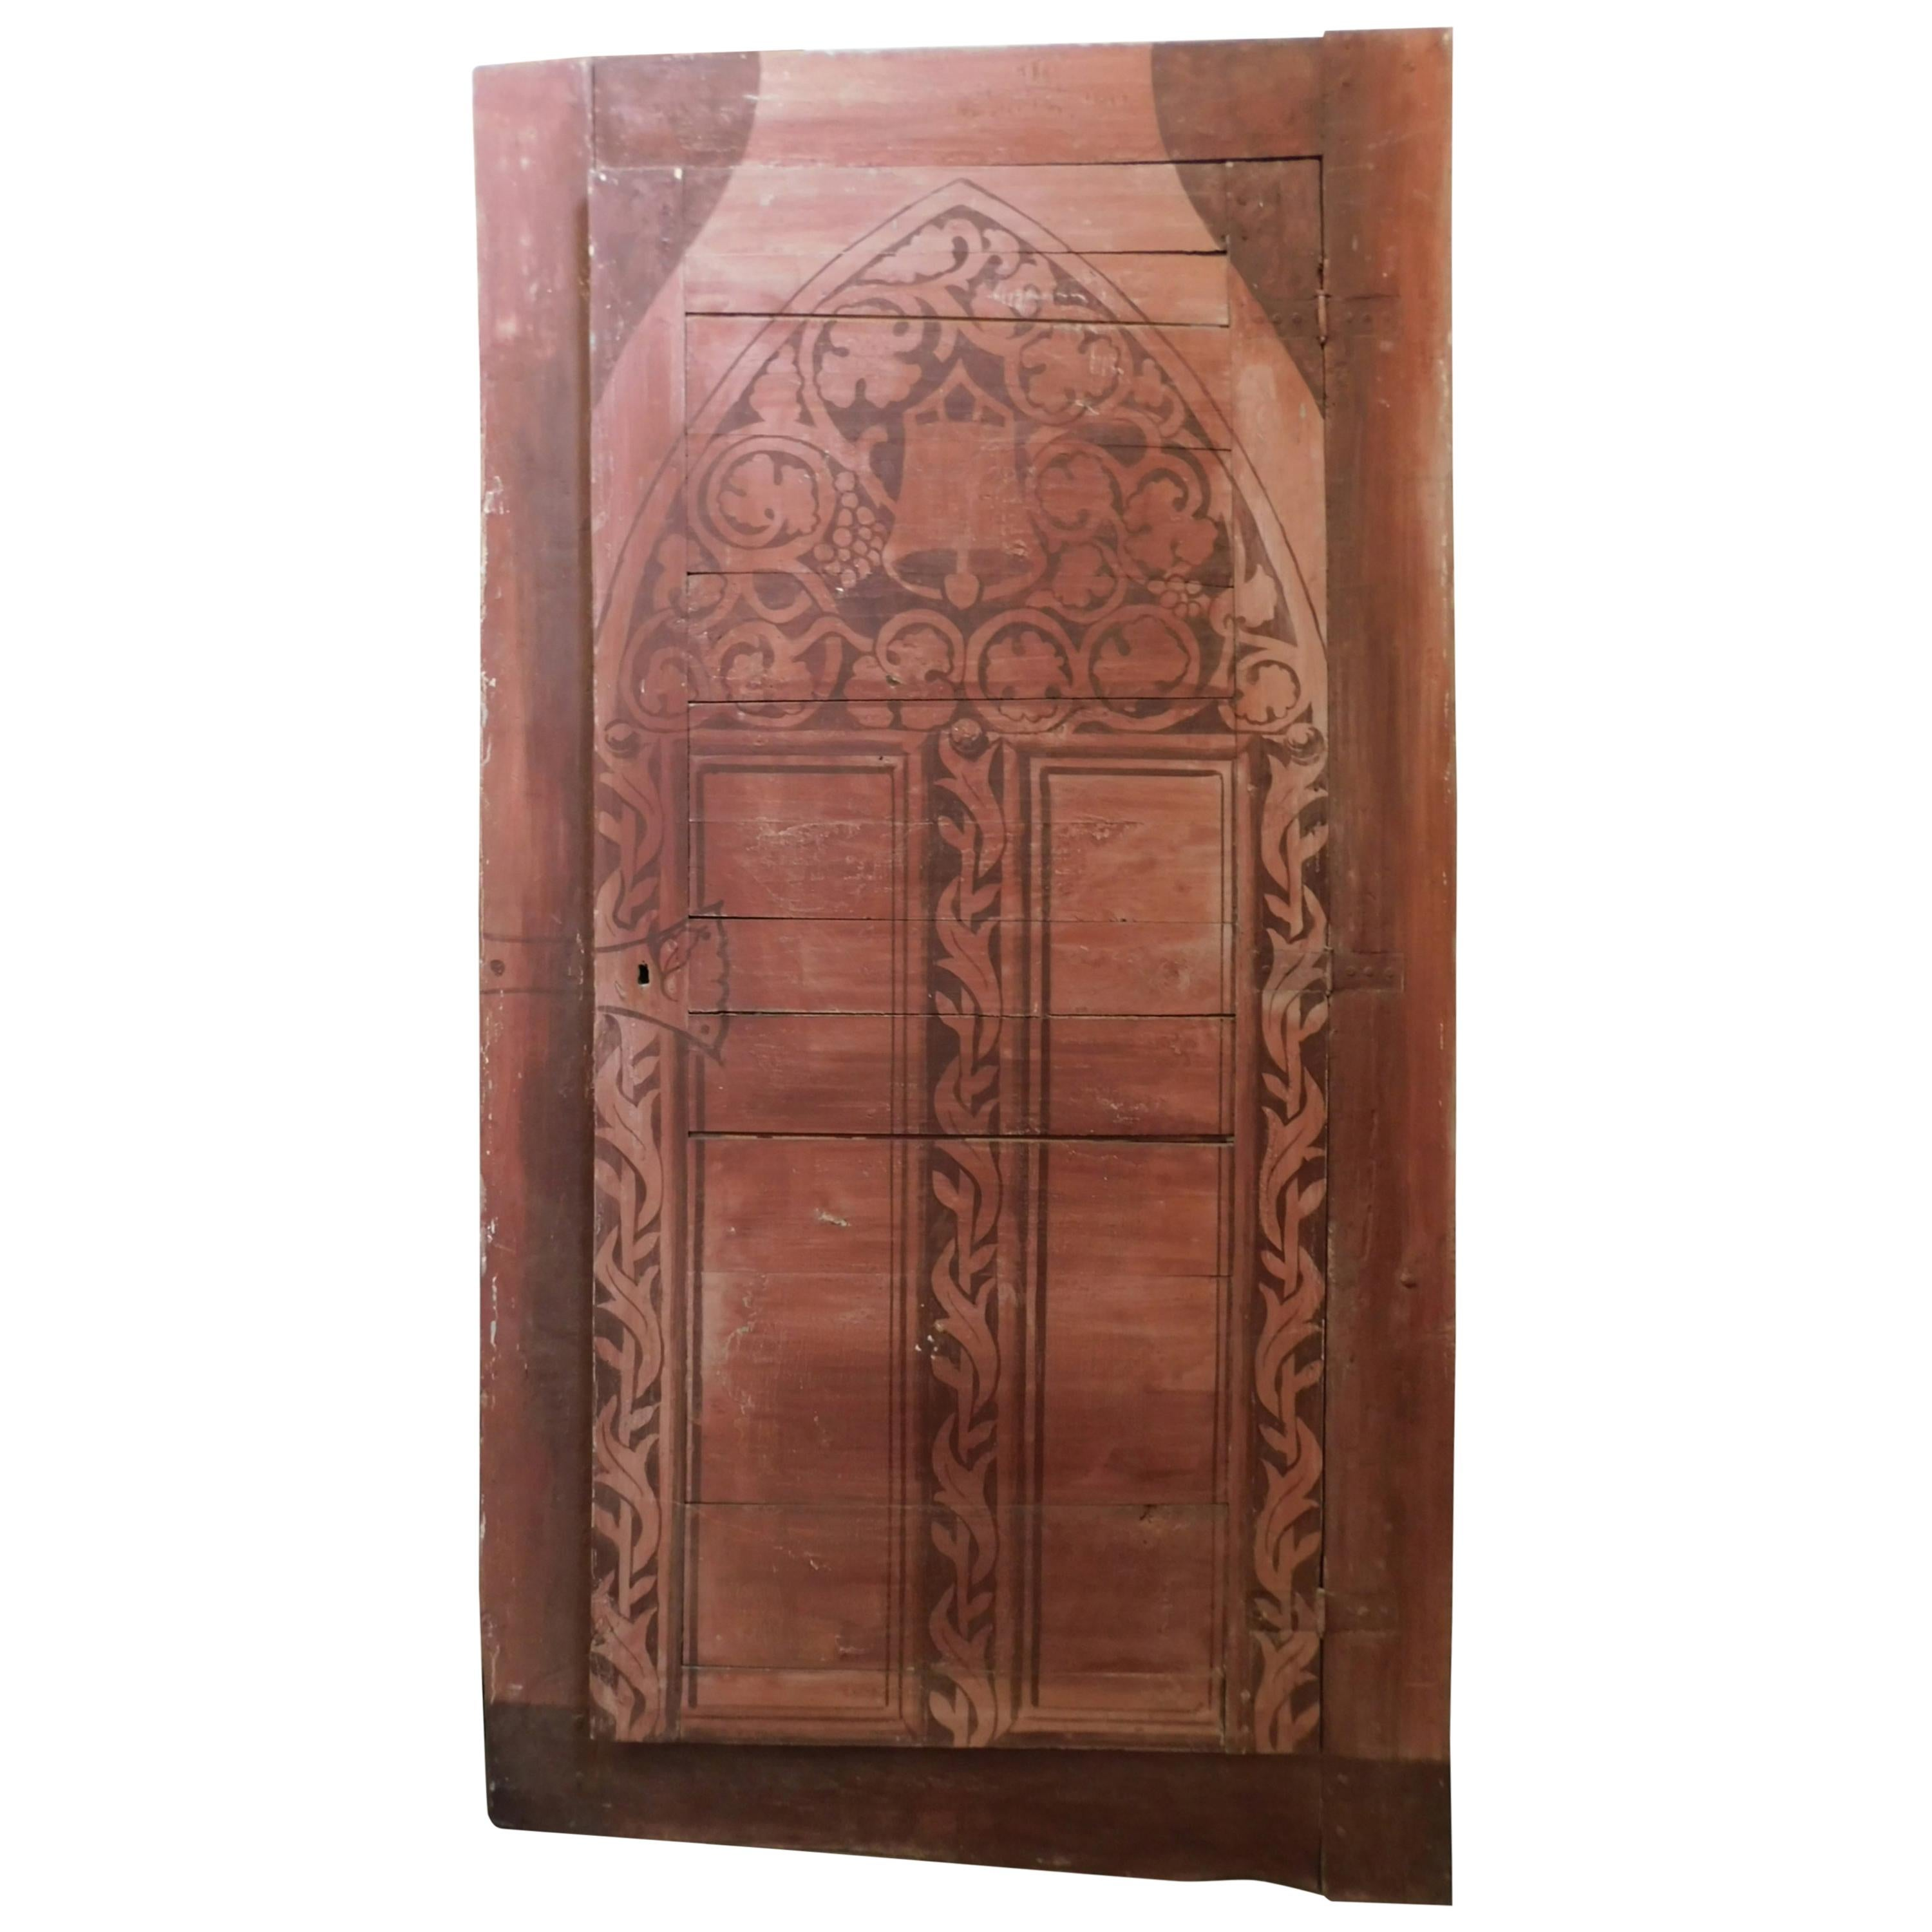 Antique Cupboard Wall Placard Door in Painted Red Wood, Italy, 1800